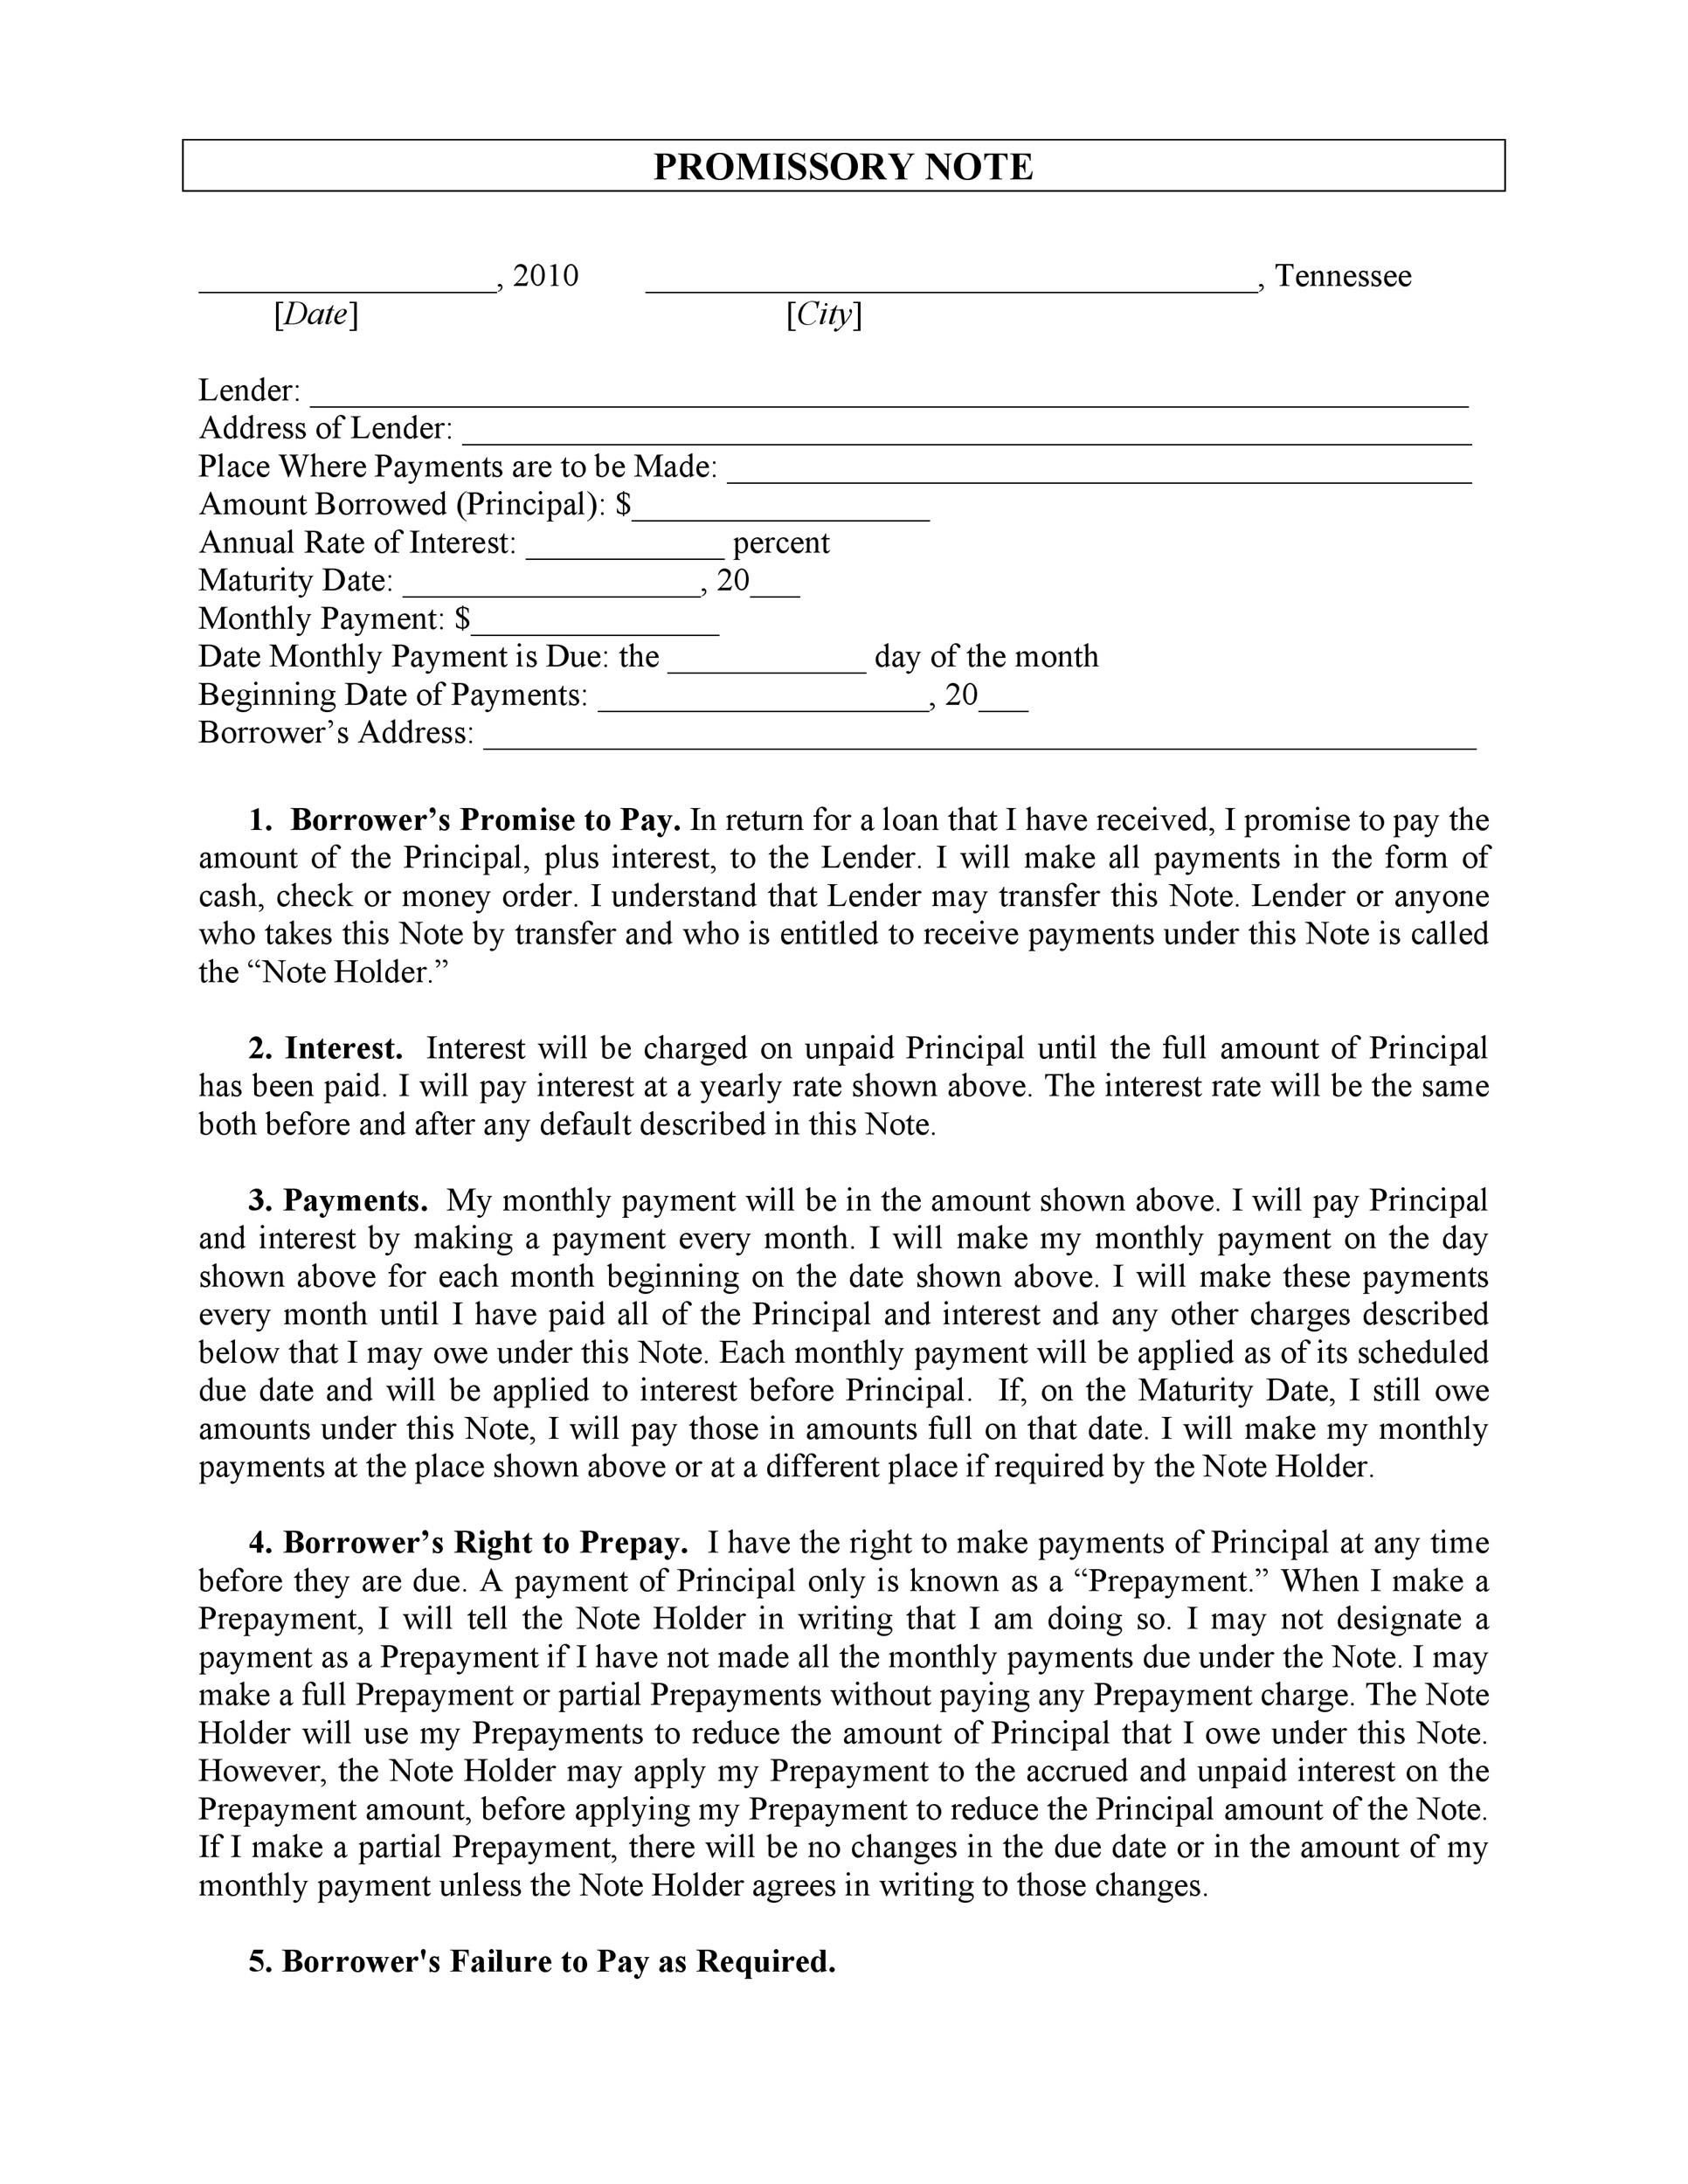 Printable Promissory Note Template 27  Promise To Pay Sample